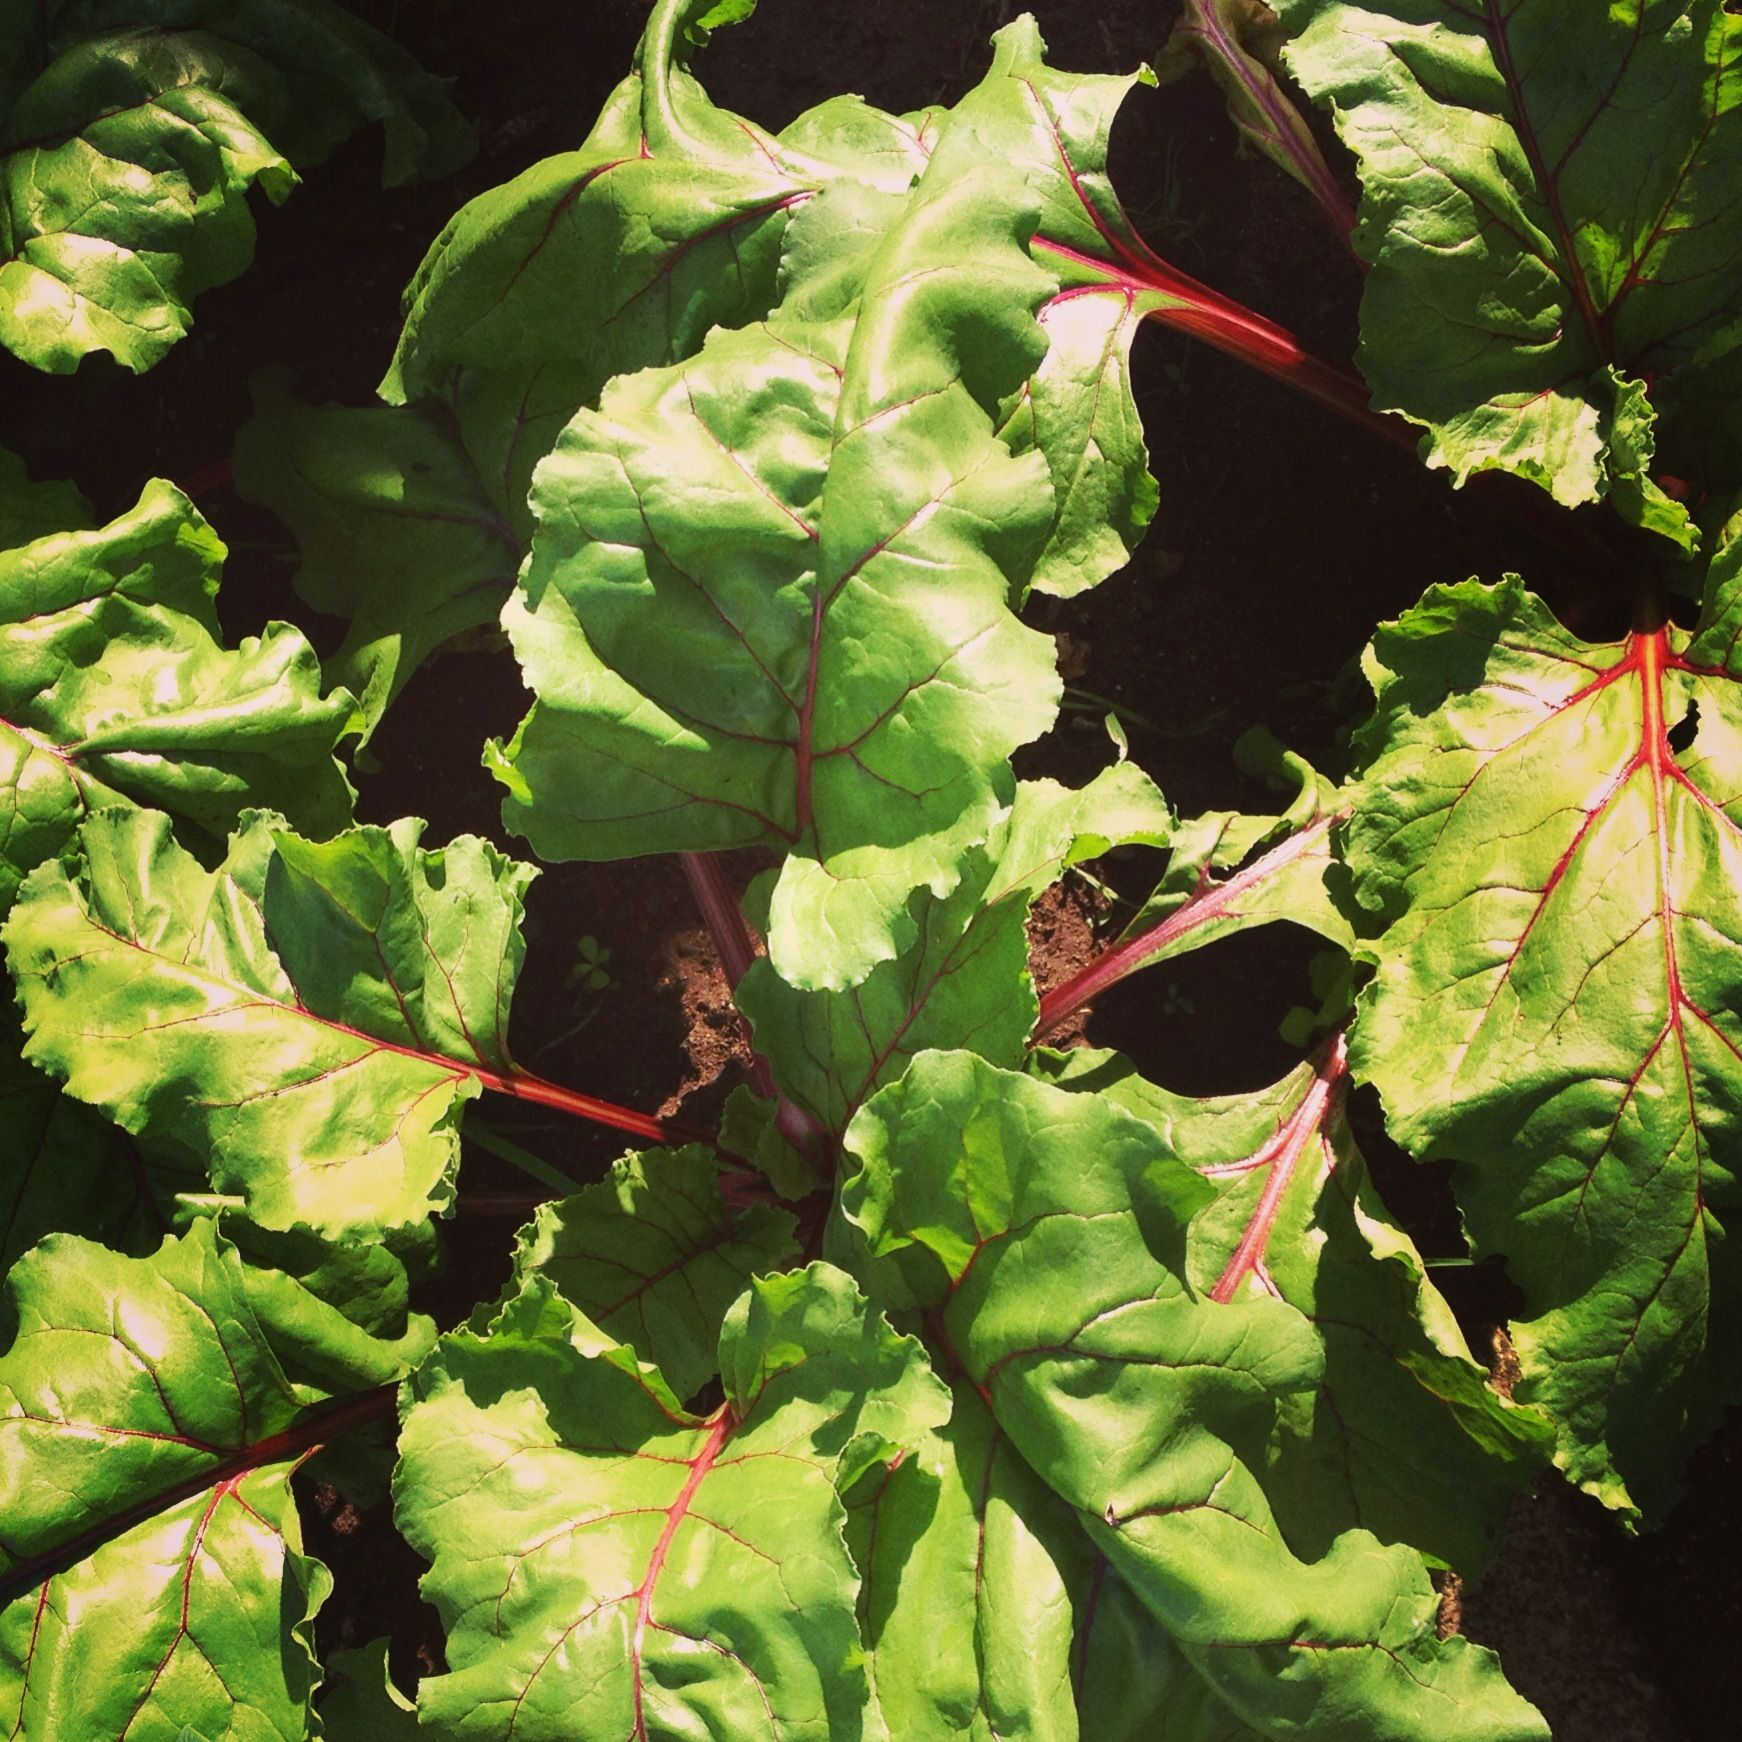 Beets in the garden plant leaves